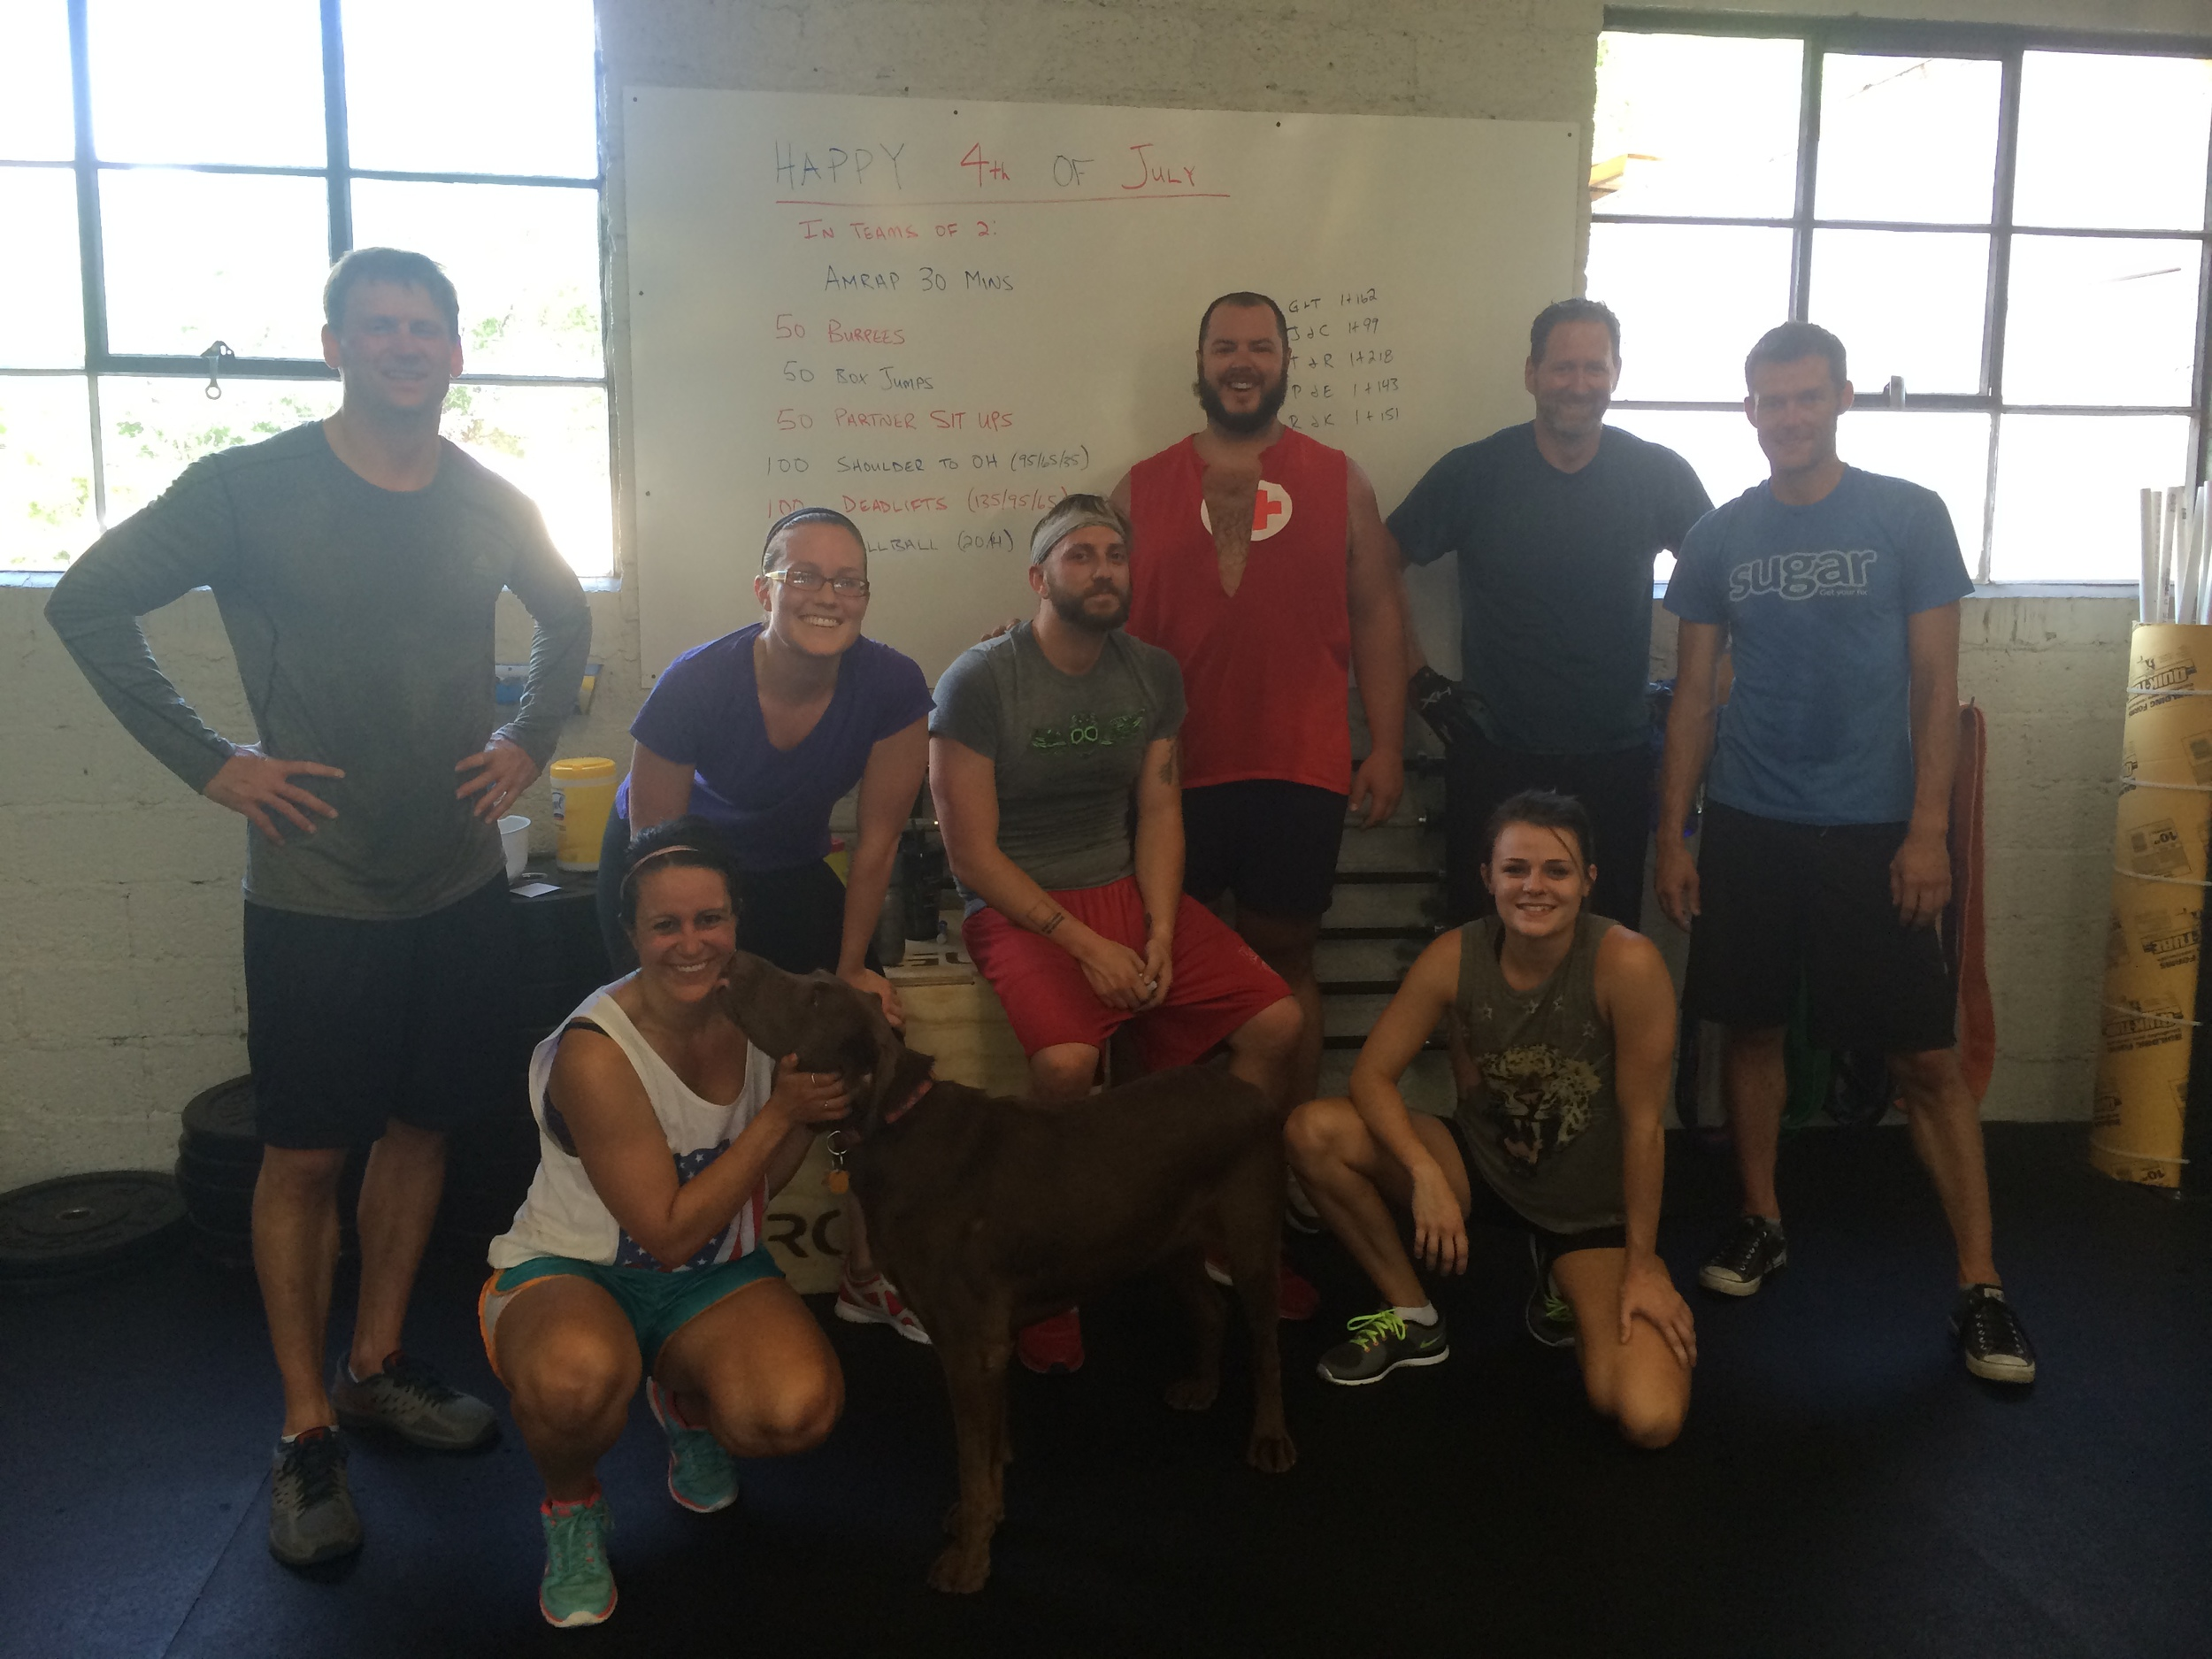 Independence Day team workout was a blast!